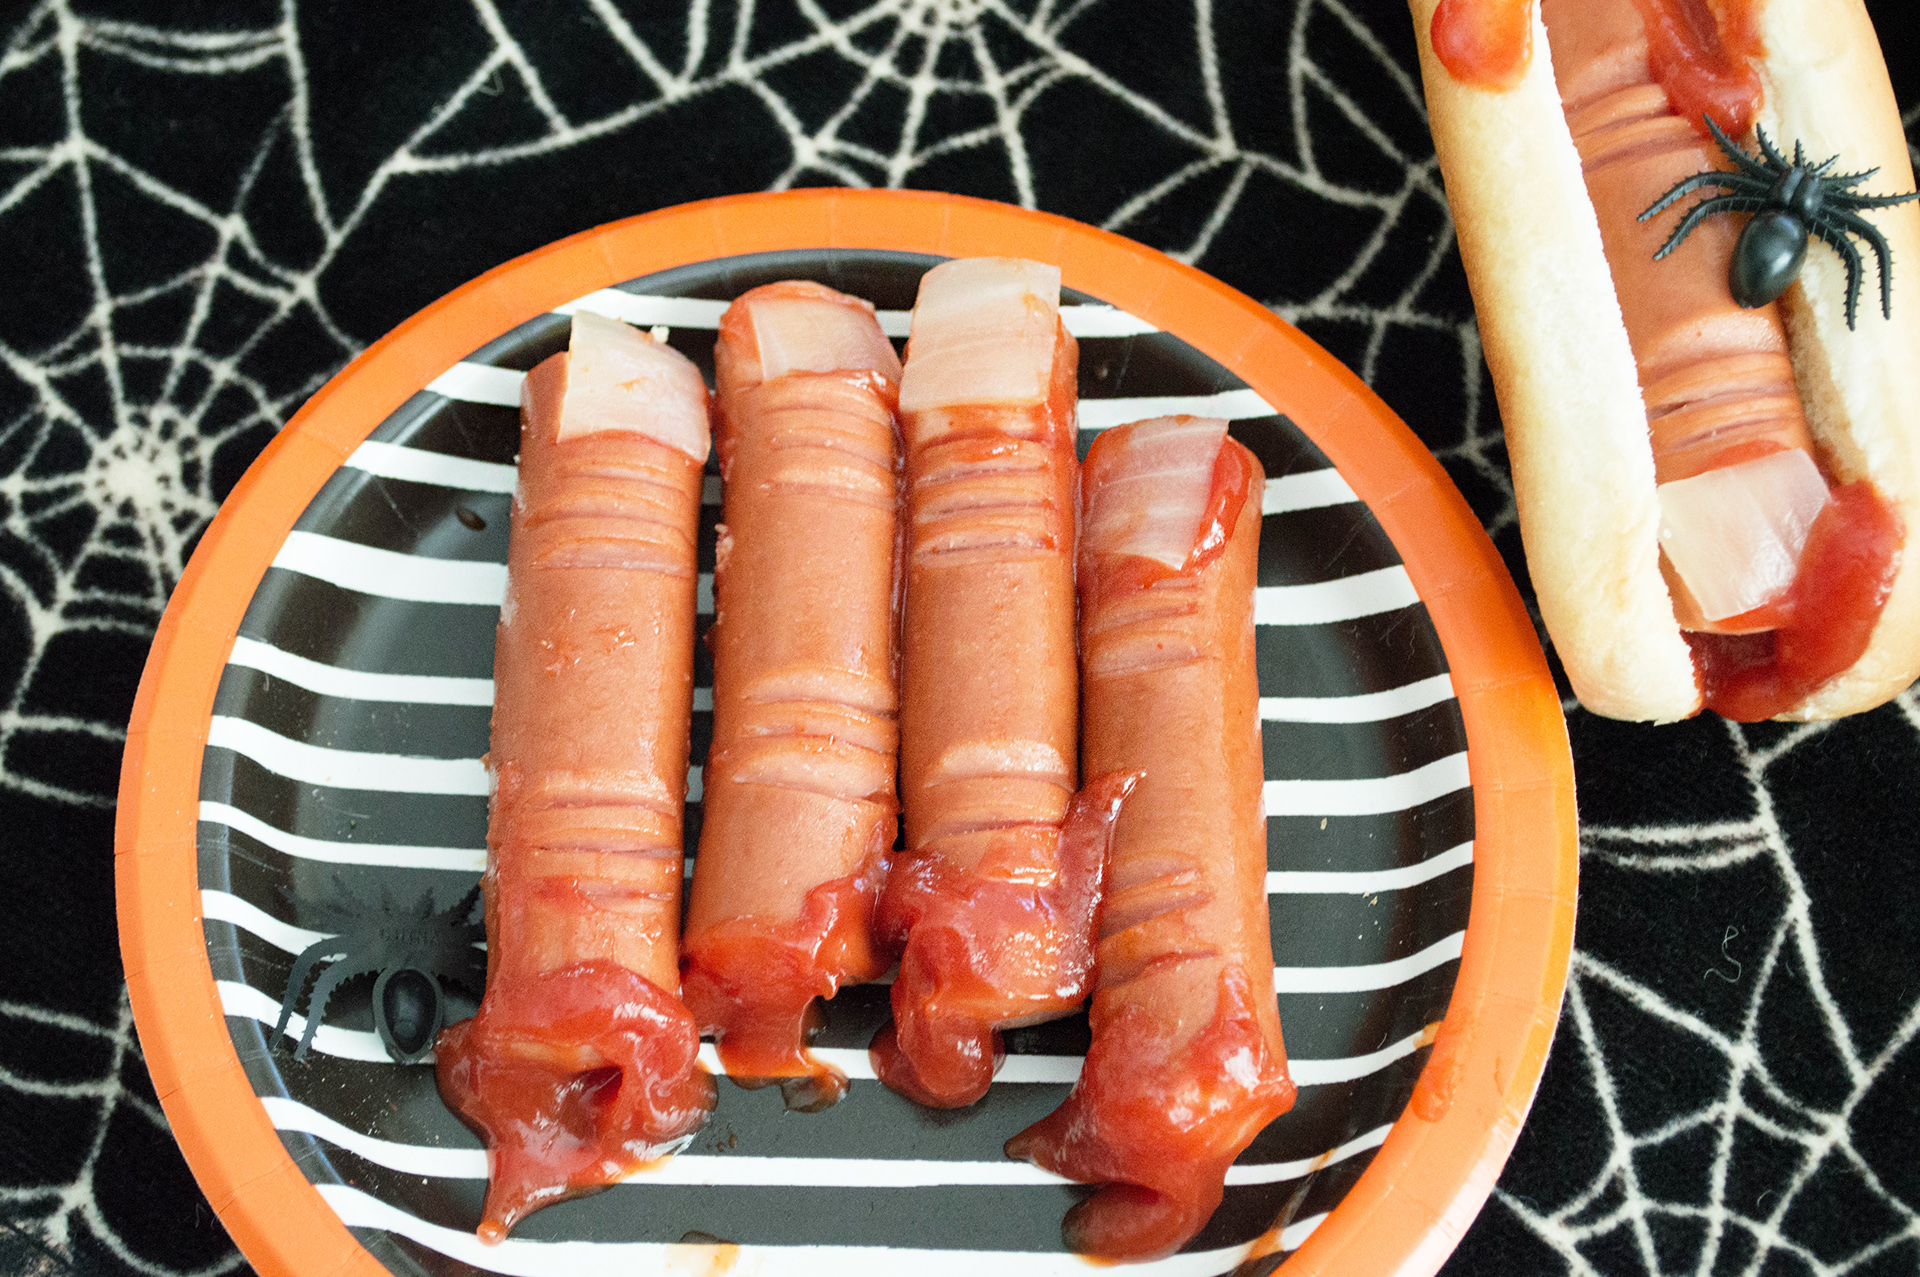 Hot dog witch fingers